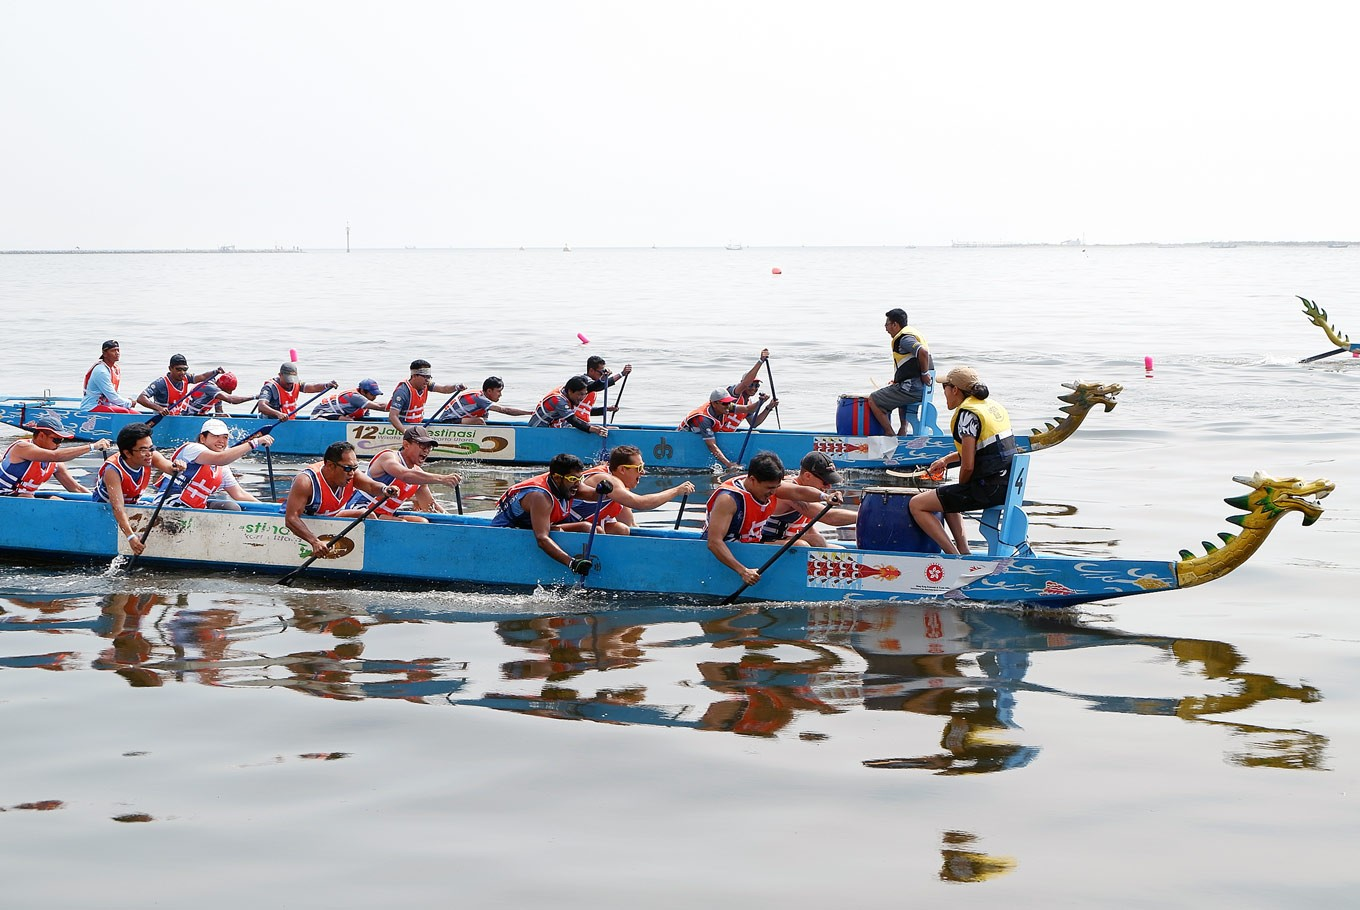 Reviving tradition in the second Jakarta Dragon Boat Festival